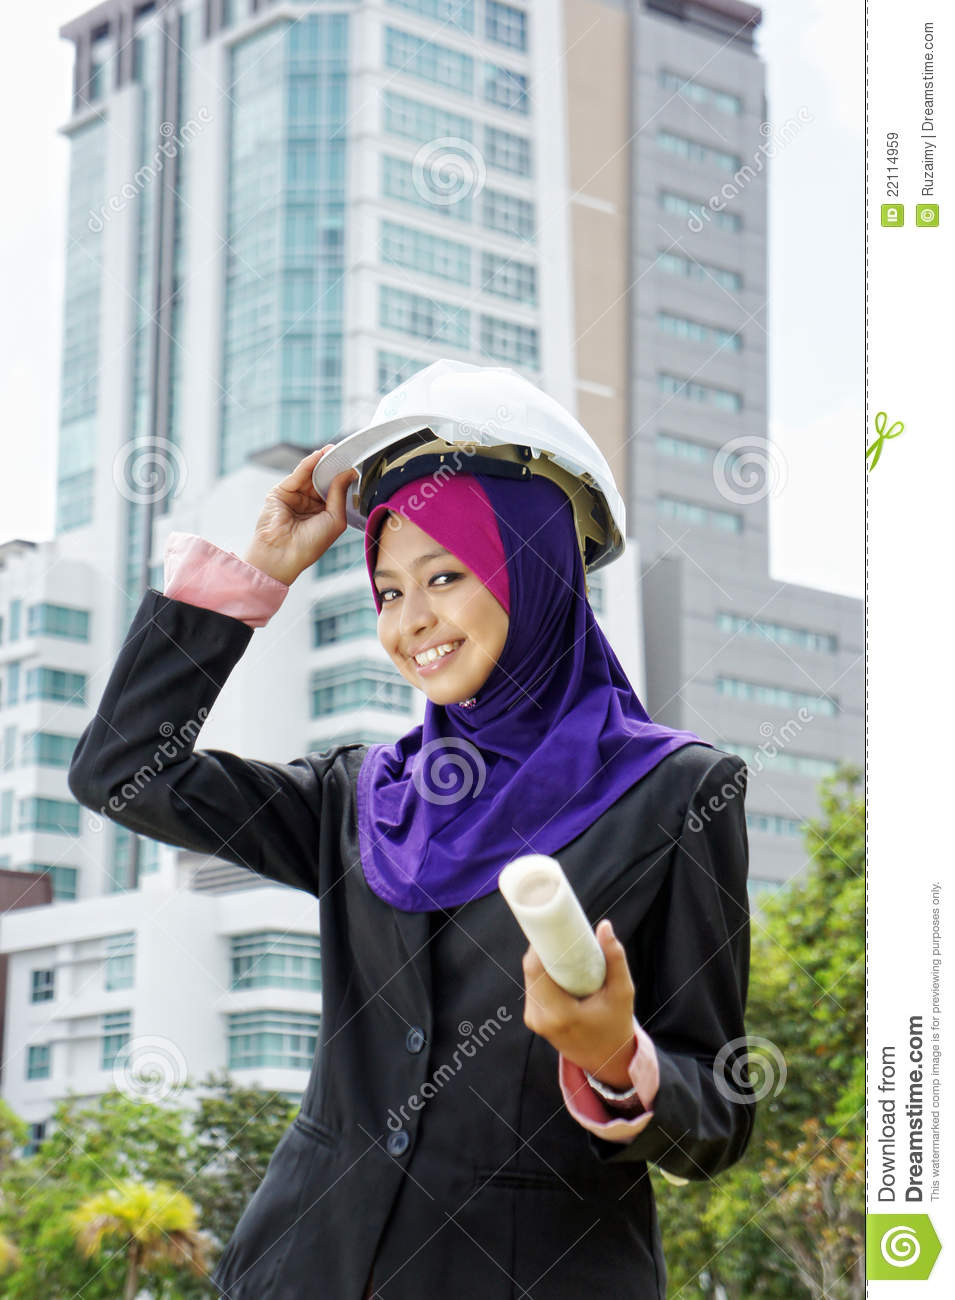 topton single muslim girls Looking for amber folk amber grob 24 2001- 04 amber folk most pk's scored in a single season 3 2014 in a muslim mohalla known by its inhabitants as.